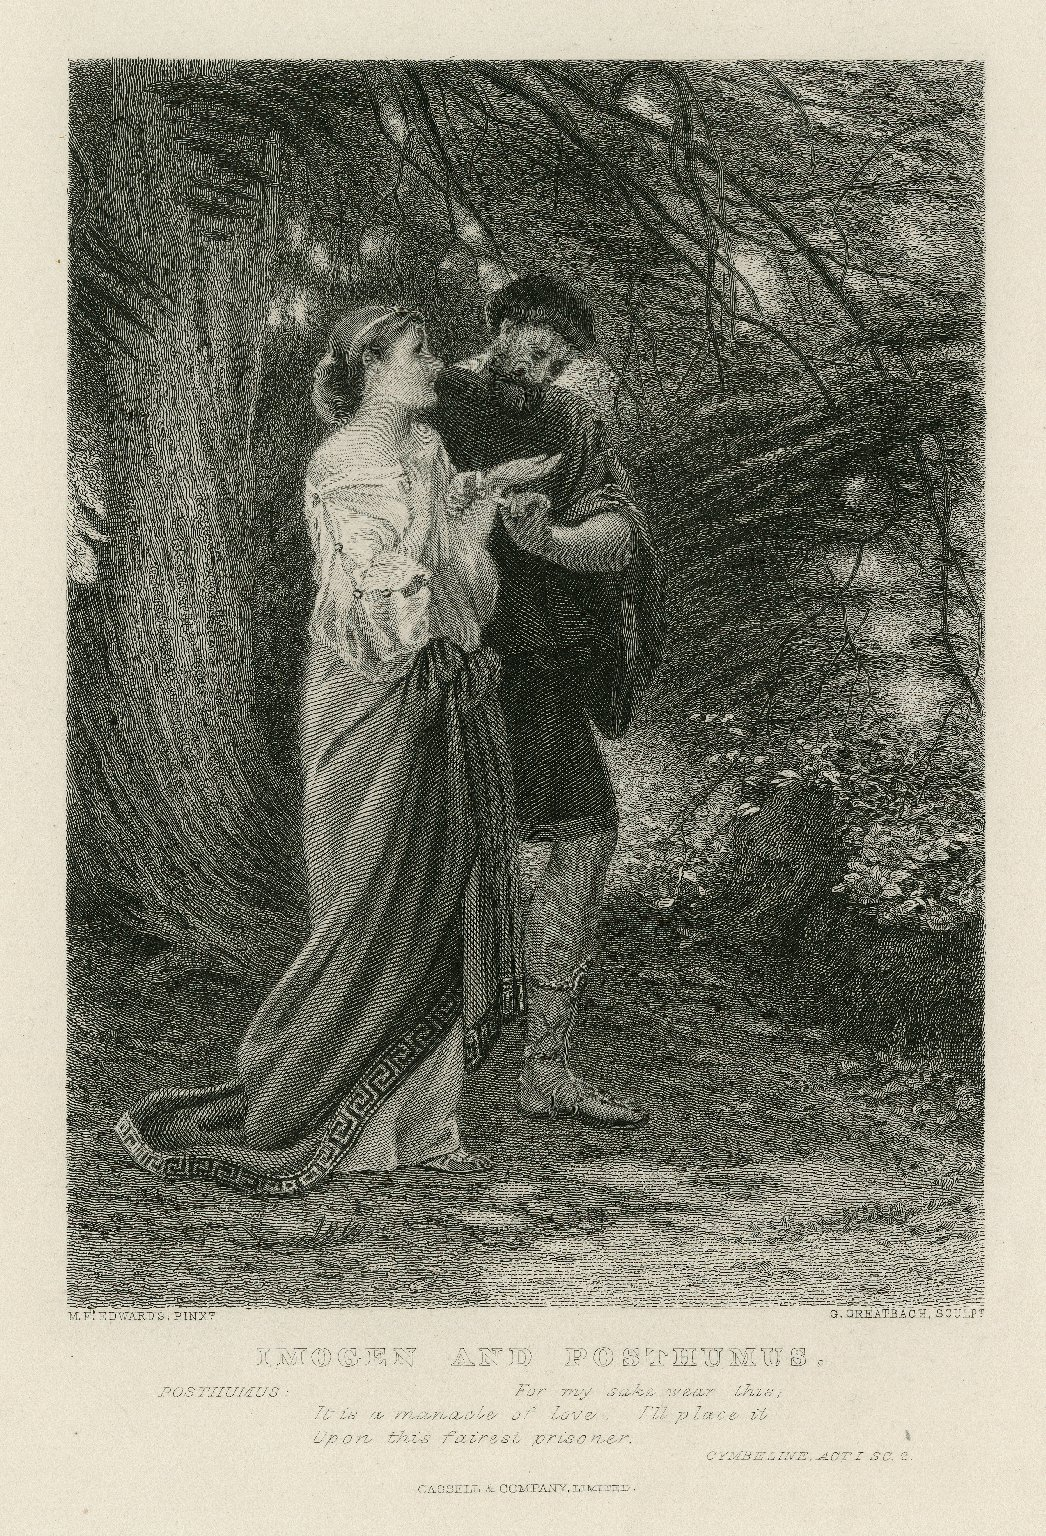 Imogen and Posthumus [graphic] : for my sake wear this ; it is a manacle of love ; Cymbeline, act I, sc. 2 [i.e. 1] / M.E. Edwards, pinxt. ; G. Greatbach, sculpt.